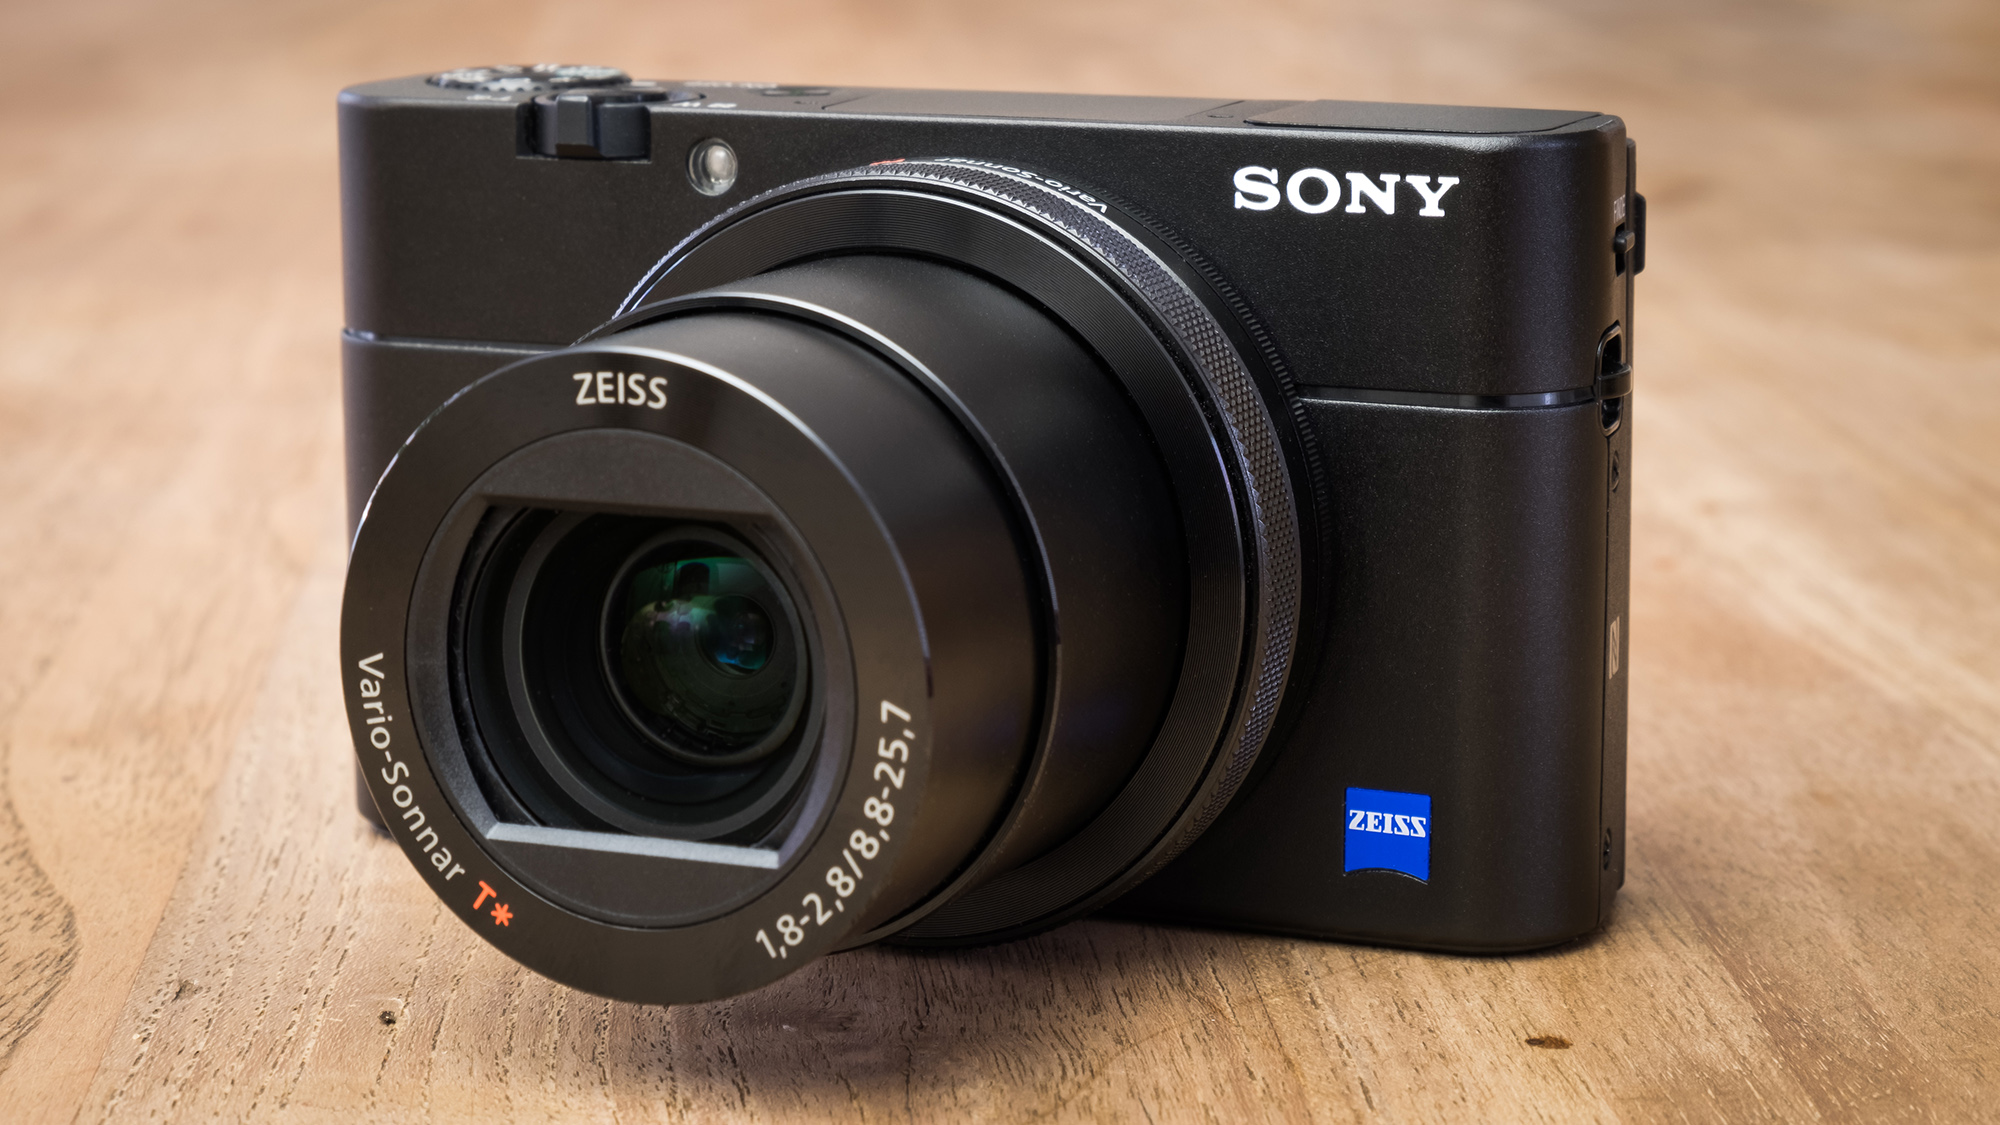 Best buy coupons for sony cameras